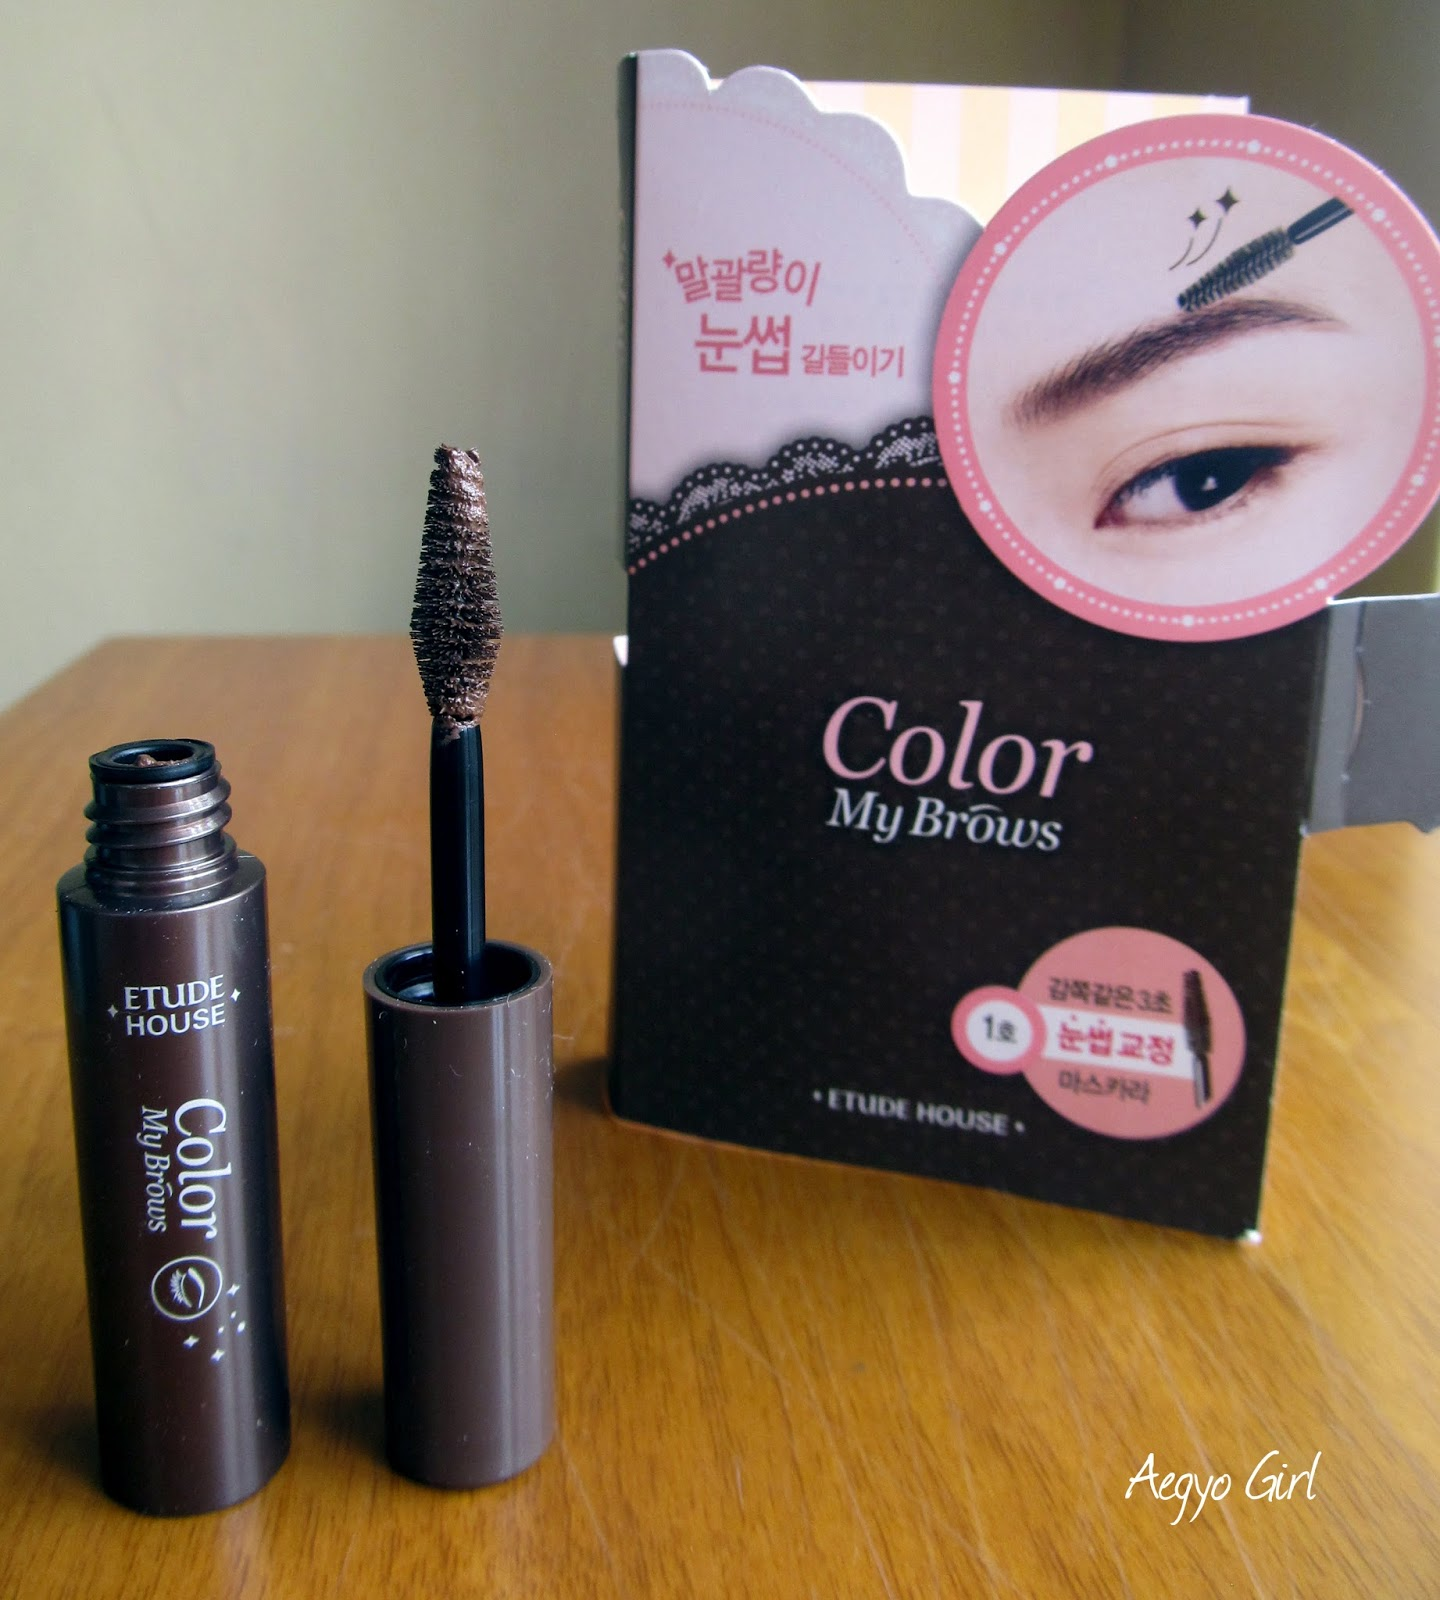 1fad6279719 This time, I experimented a whole new kind of product for me (yeah me who  live on a lost island), it's the Etude House Color My Brows in #01 Rich  Brown.